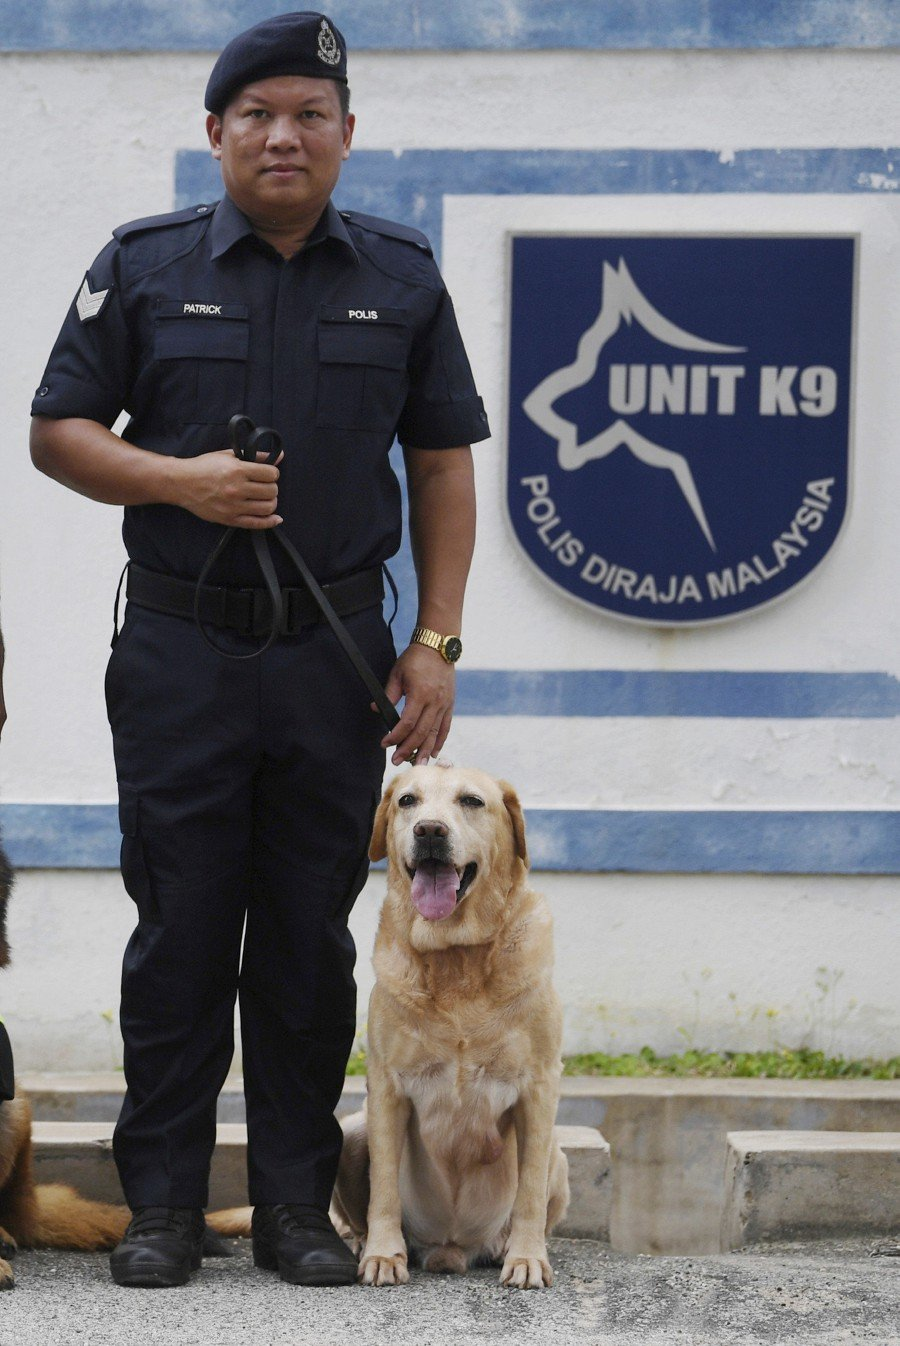 Tho, a Labrador, was born on Jan 30, 2008, in China and served as a narcotics sniffer dog with Sergeant Patrick Sandai. -- Bernama File Pix